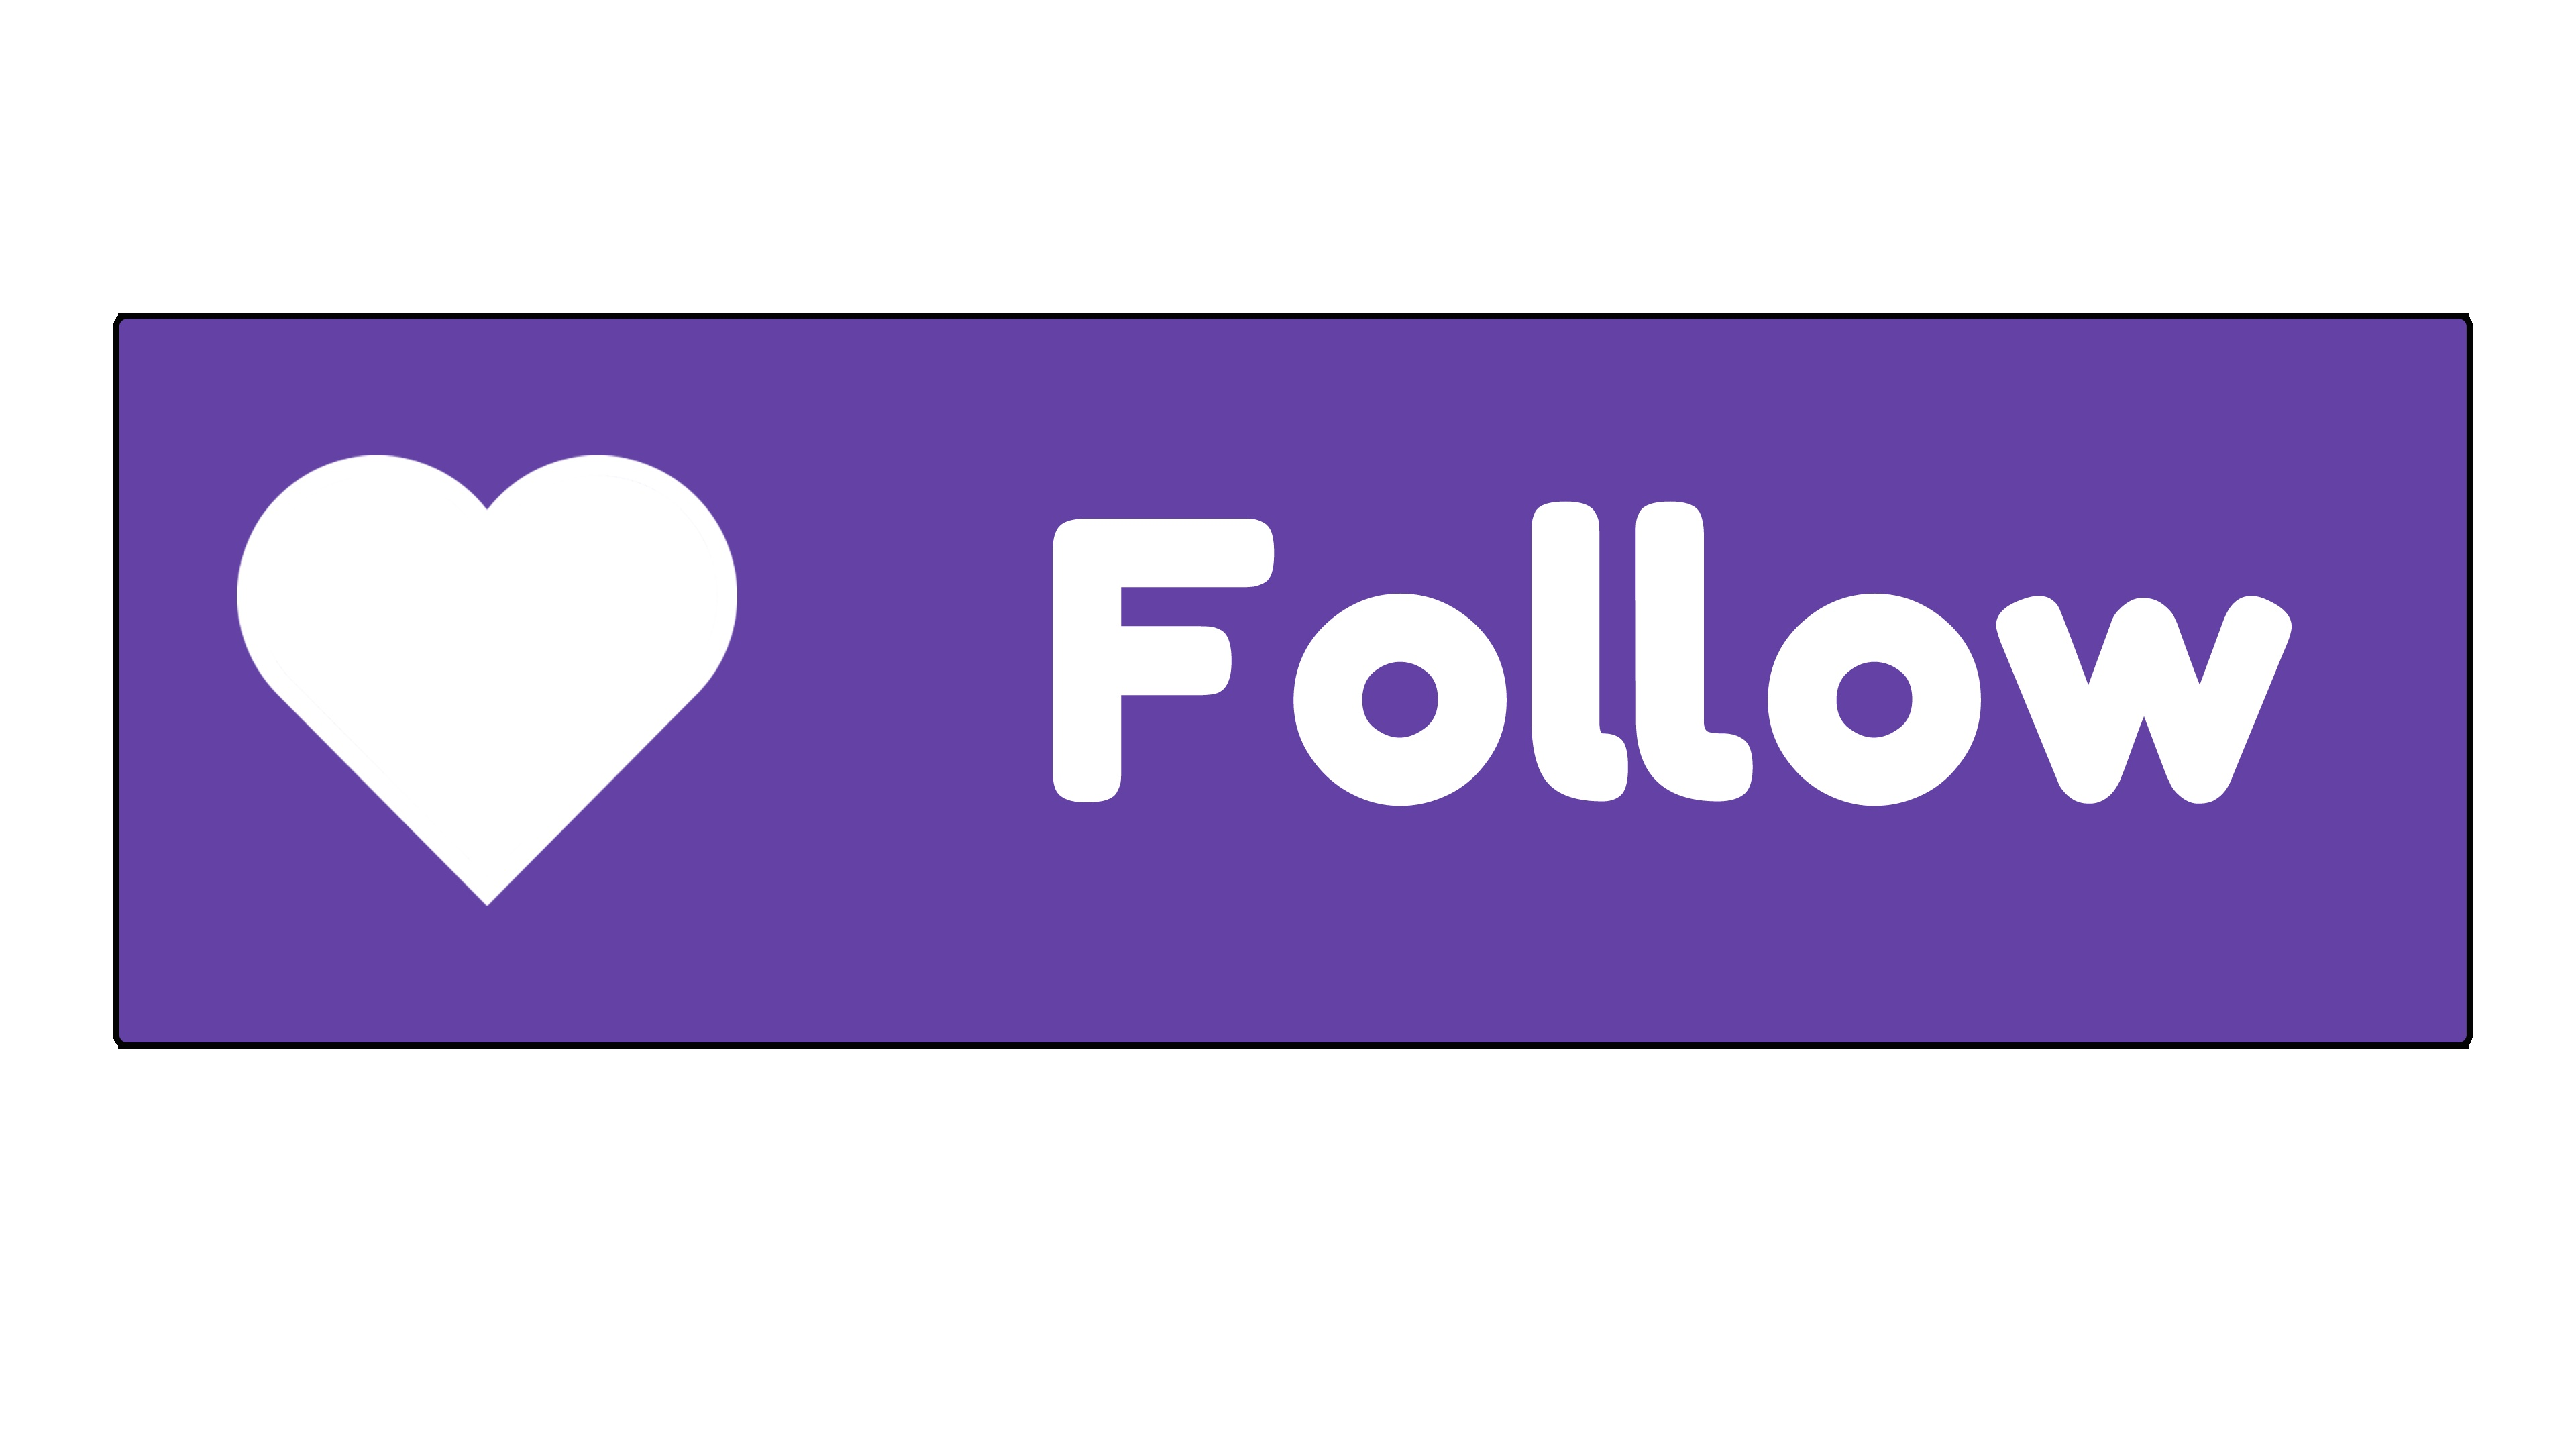 1000 Followers with chat bots(login:oauth:token) Twitch 2019